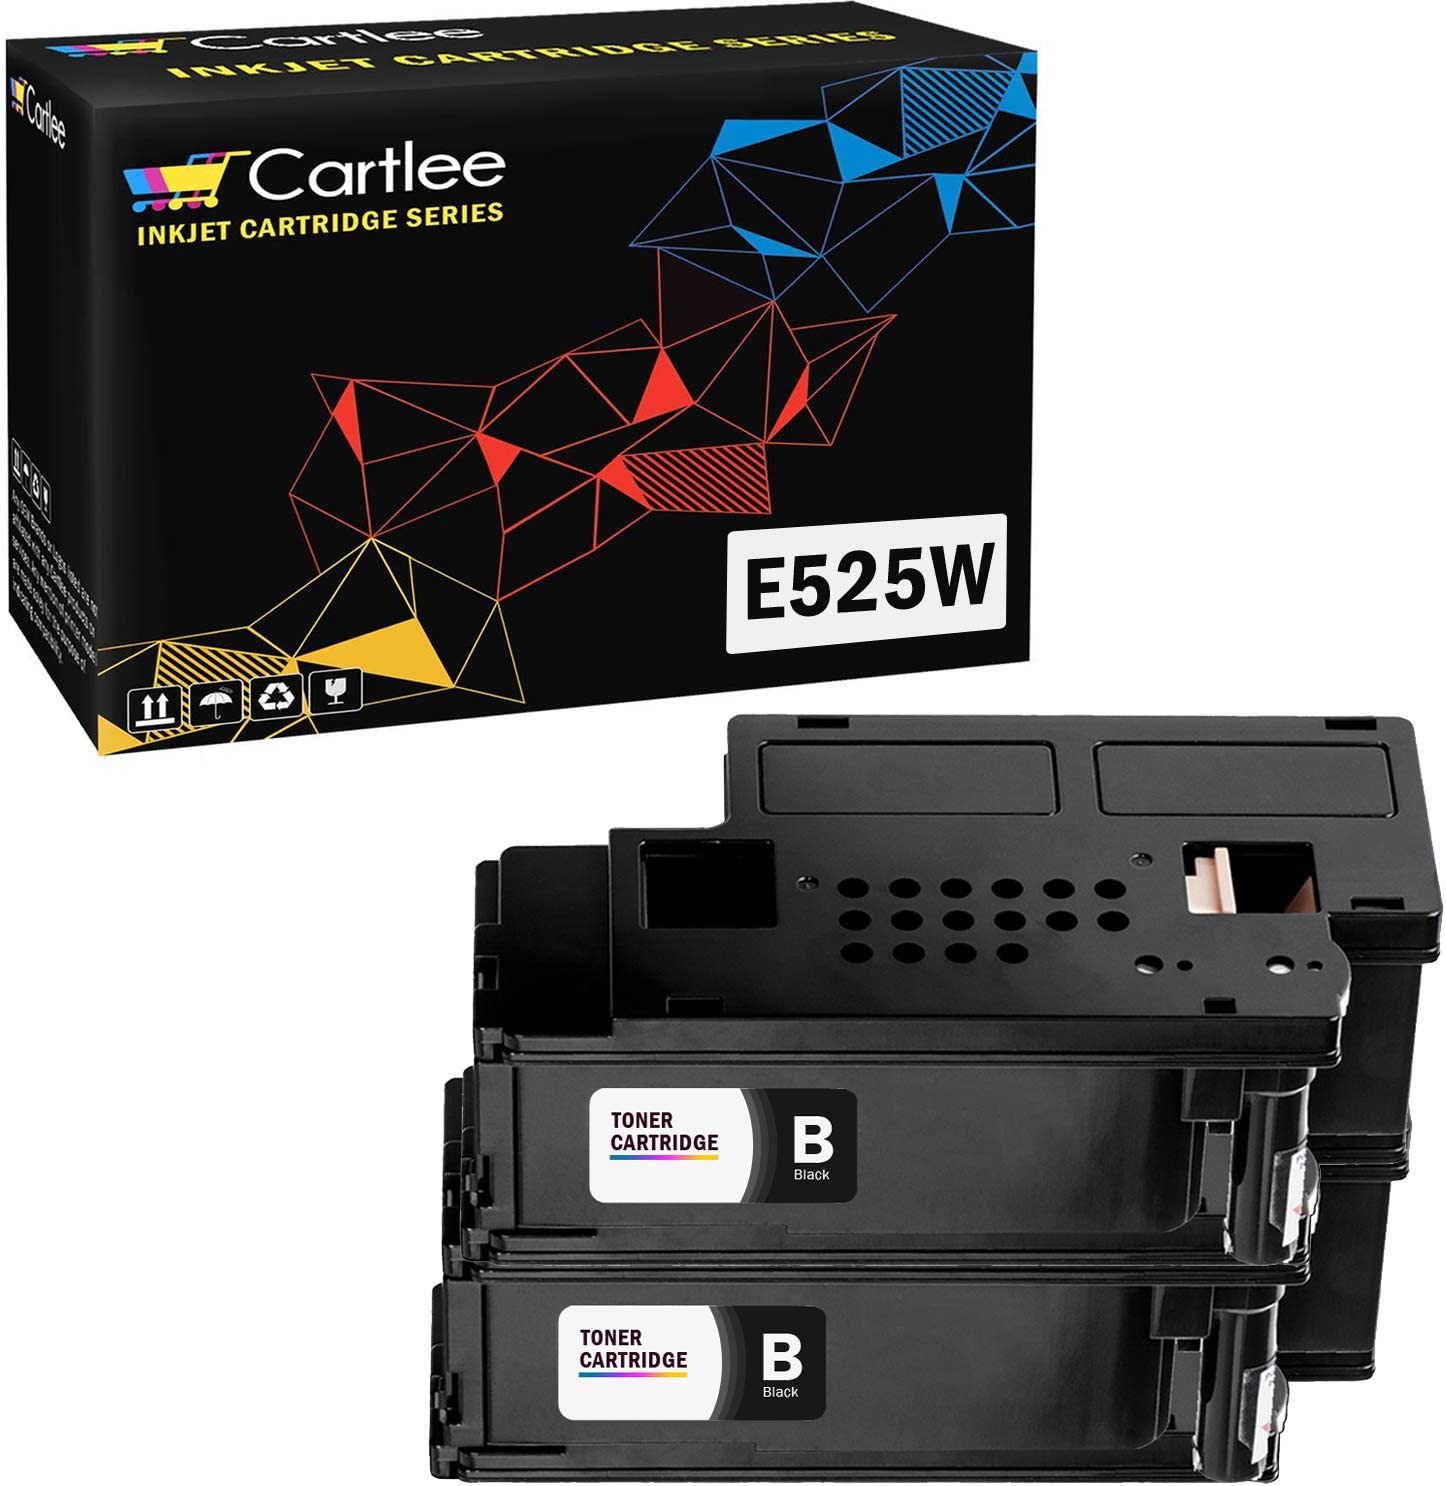 Cartlee Set of 2 Black Compatible High Yield Laser Toner Cartridges Replacement Ink for Dell E525W E525DW 525W 525DW 525 DPV4T H3M8P Color Printers